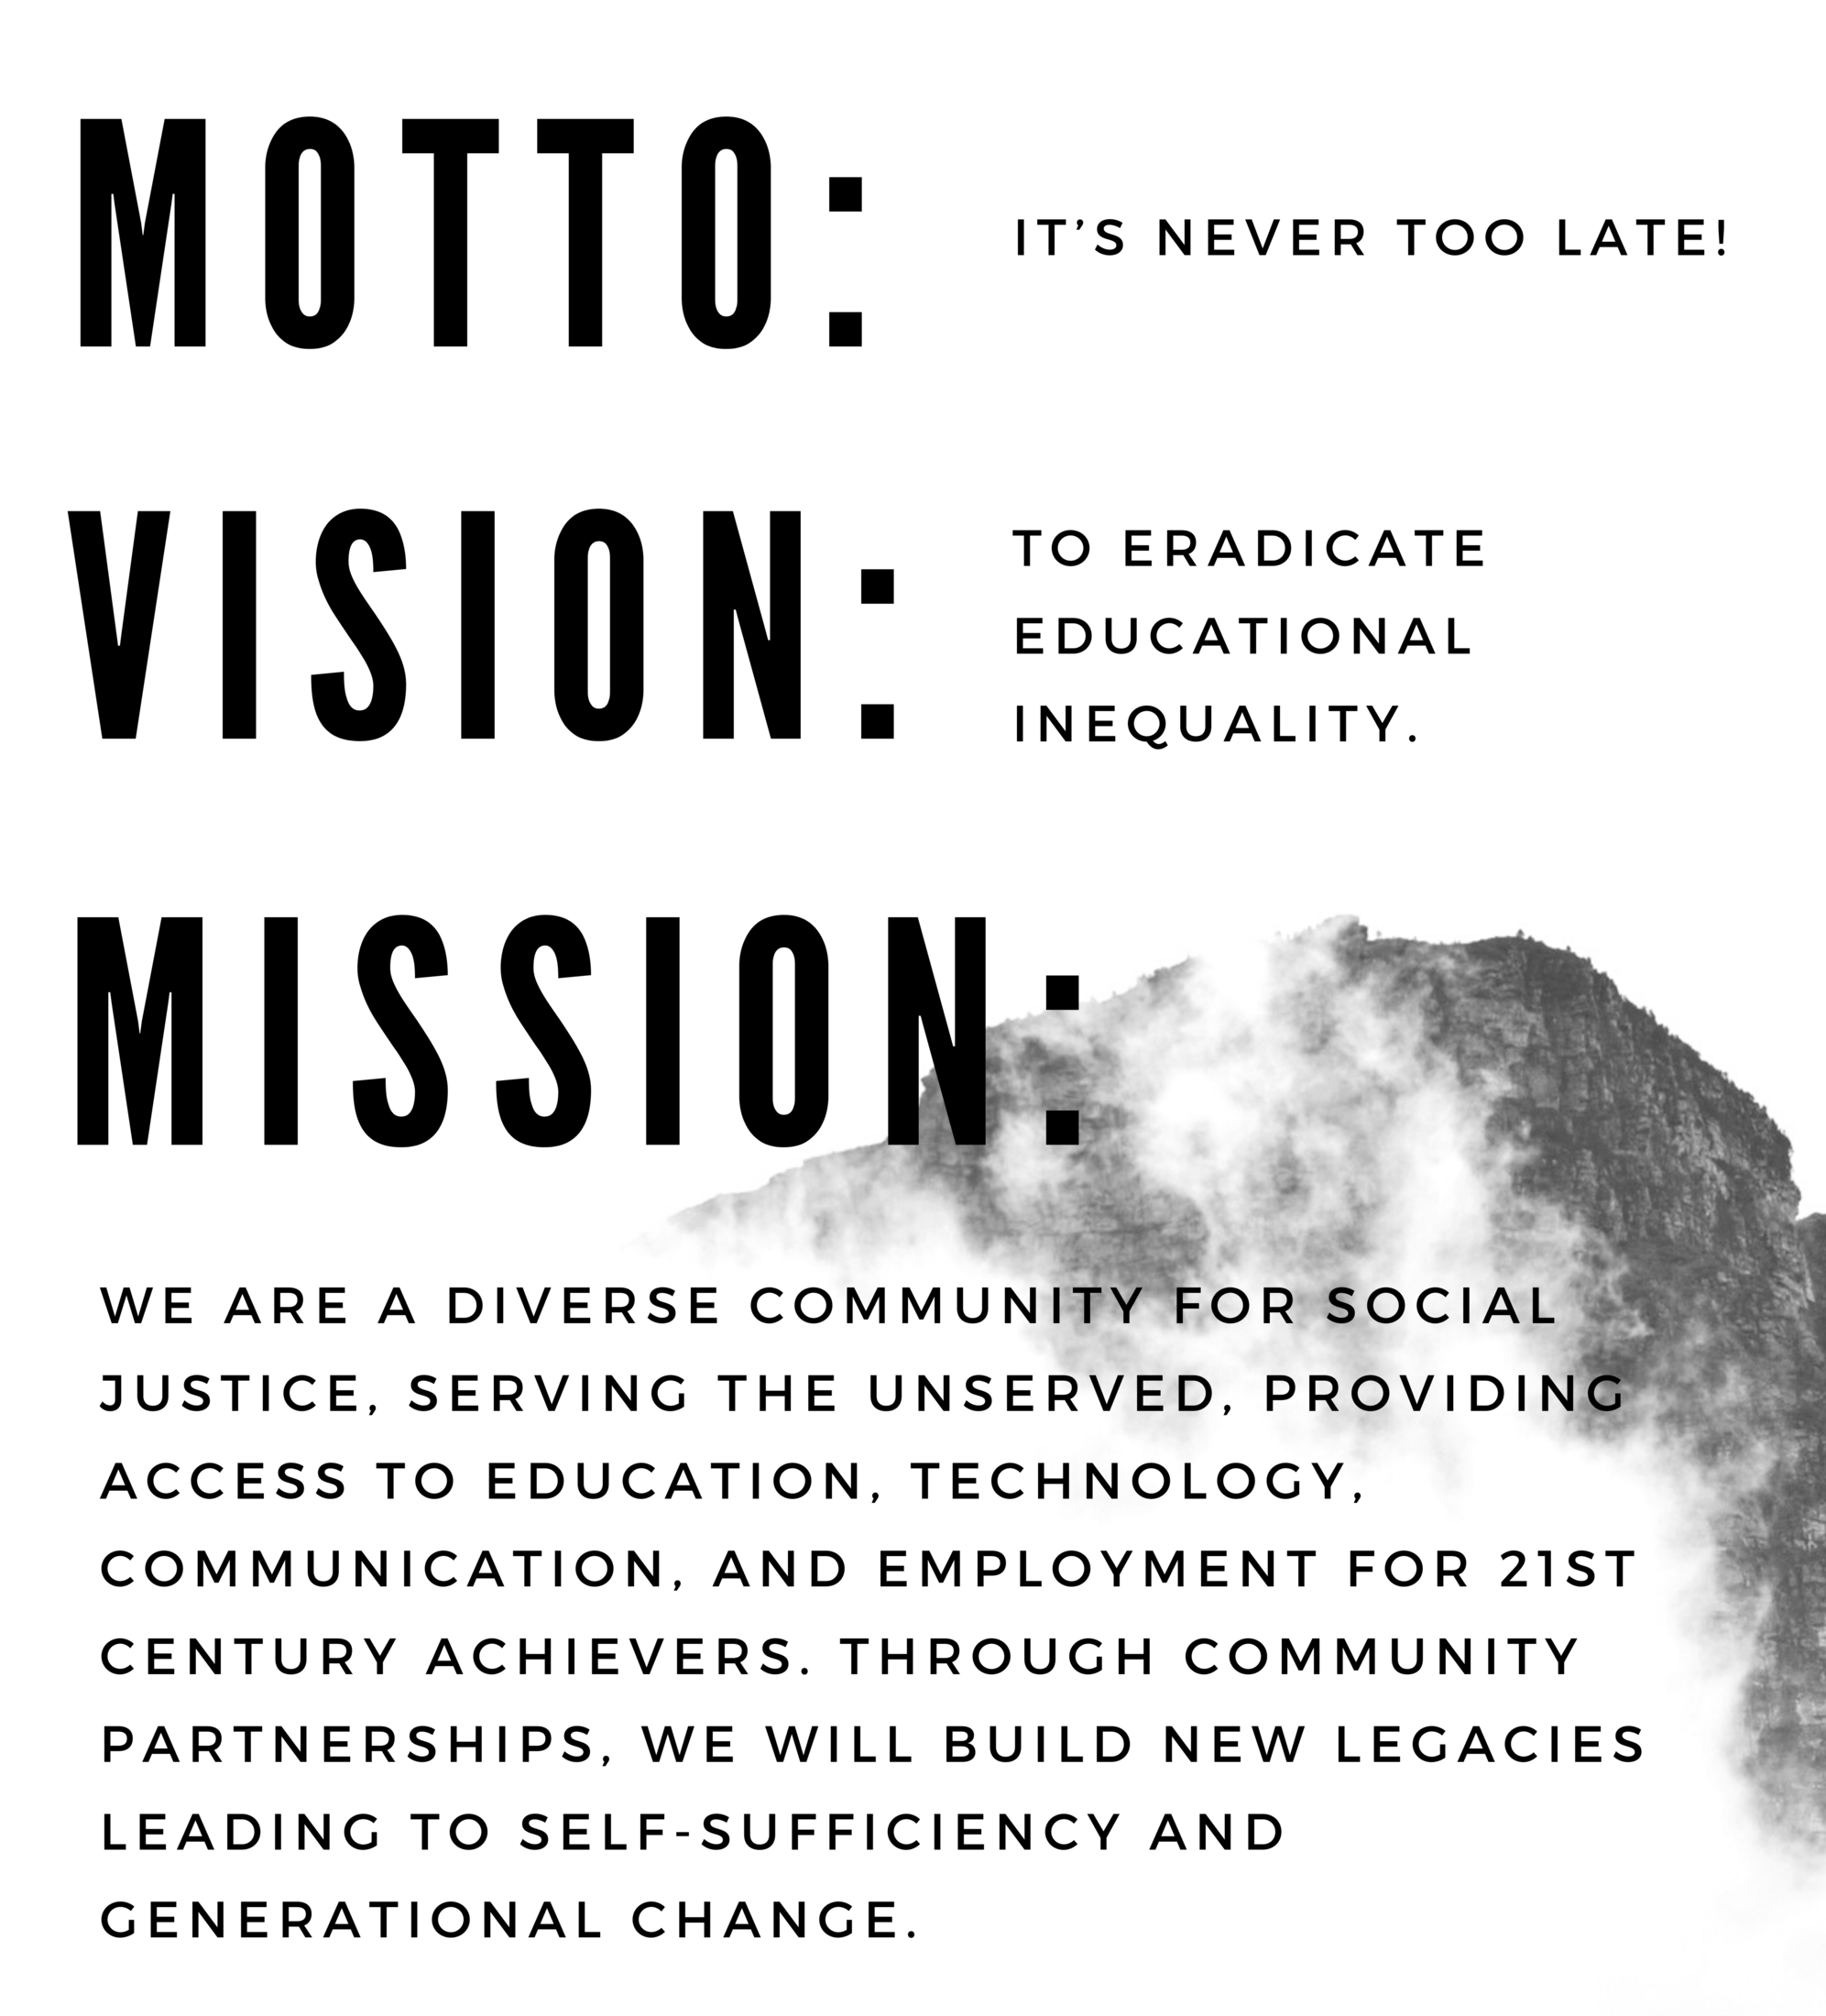 Motto: It's Never Too Late    Vision: To Eradicate Educational Inequality. Mission:We are a diverse community for social justice, serving the unserved, providing access to education, technology, communication, and employment for 21st century achievers. Through community partnerships, we will build new legacies leading to self-sufficiency and generational change.